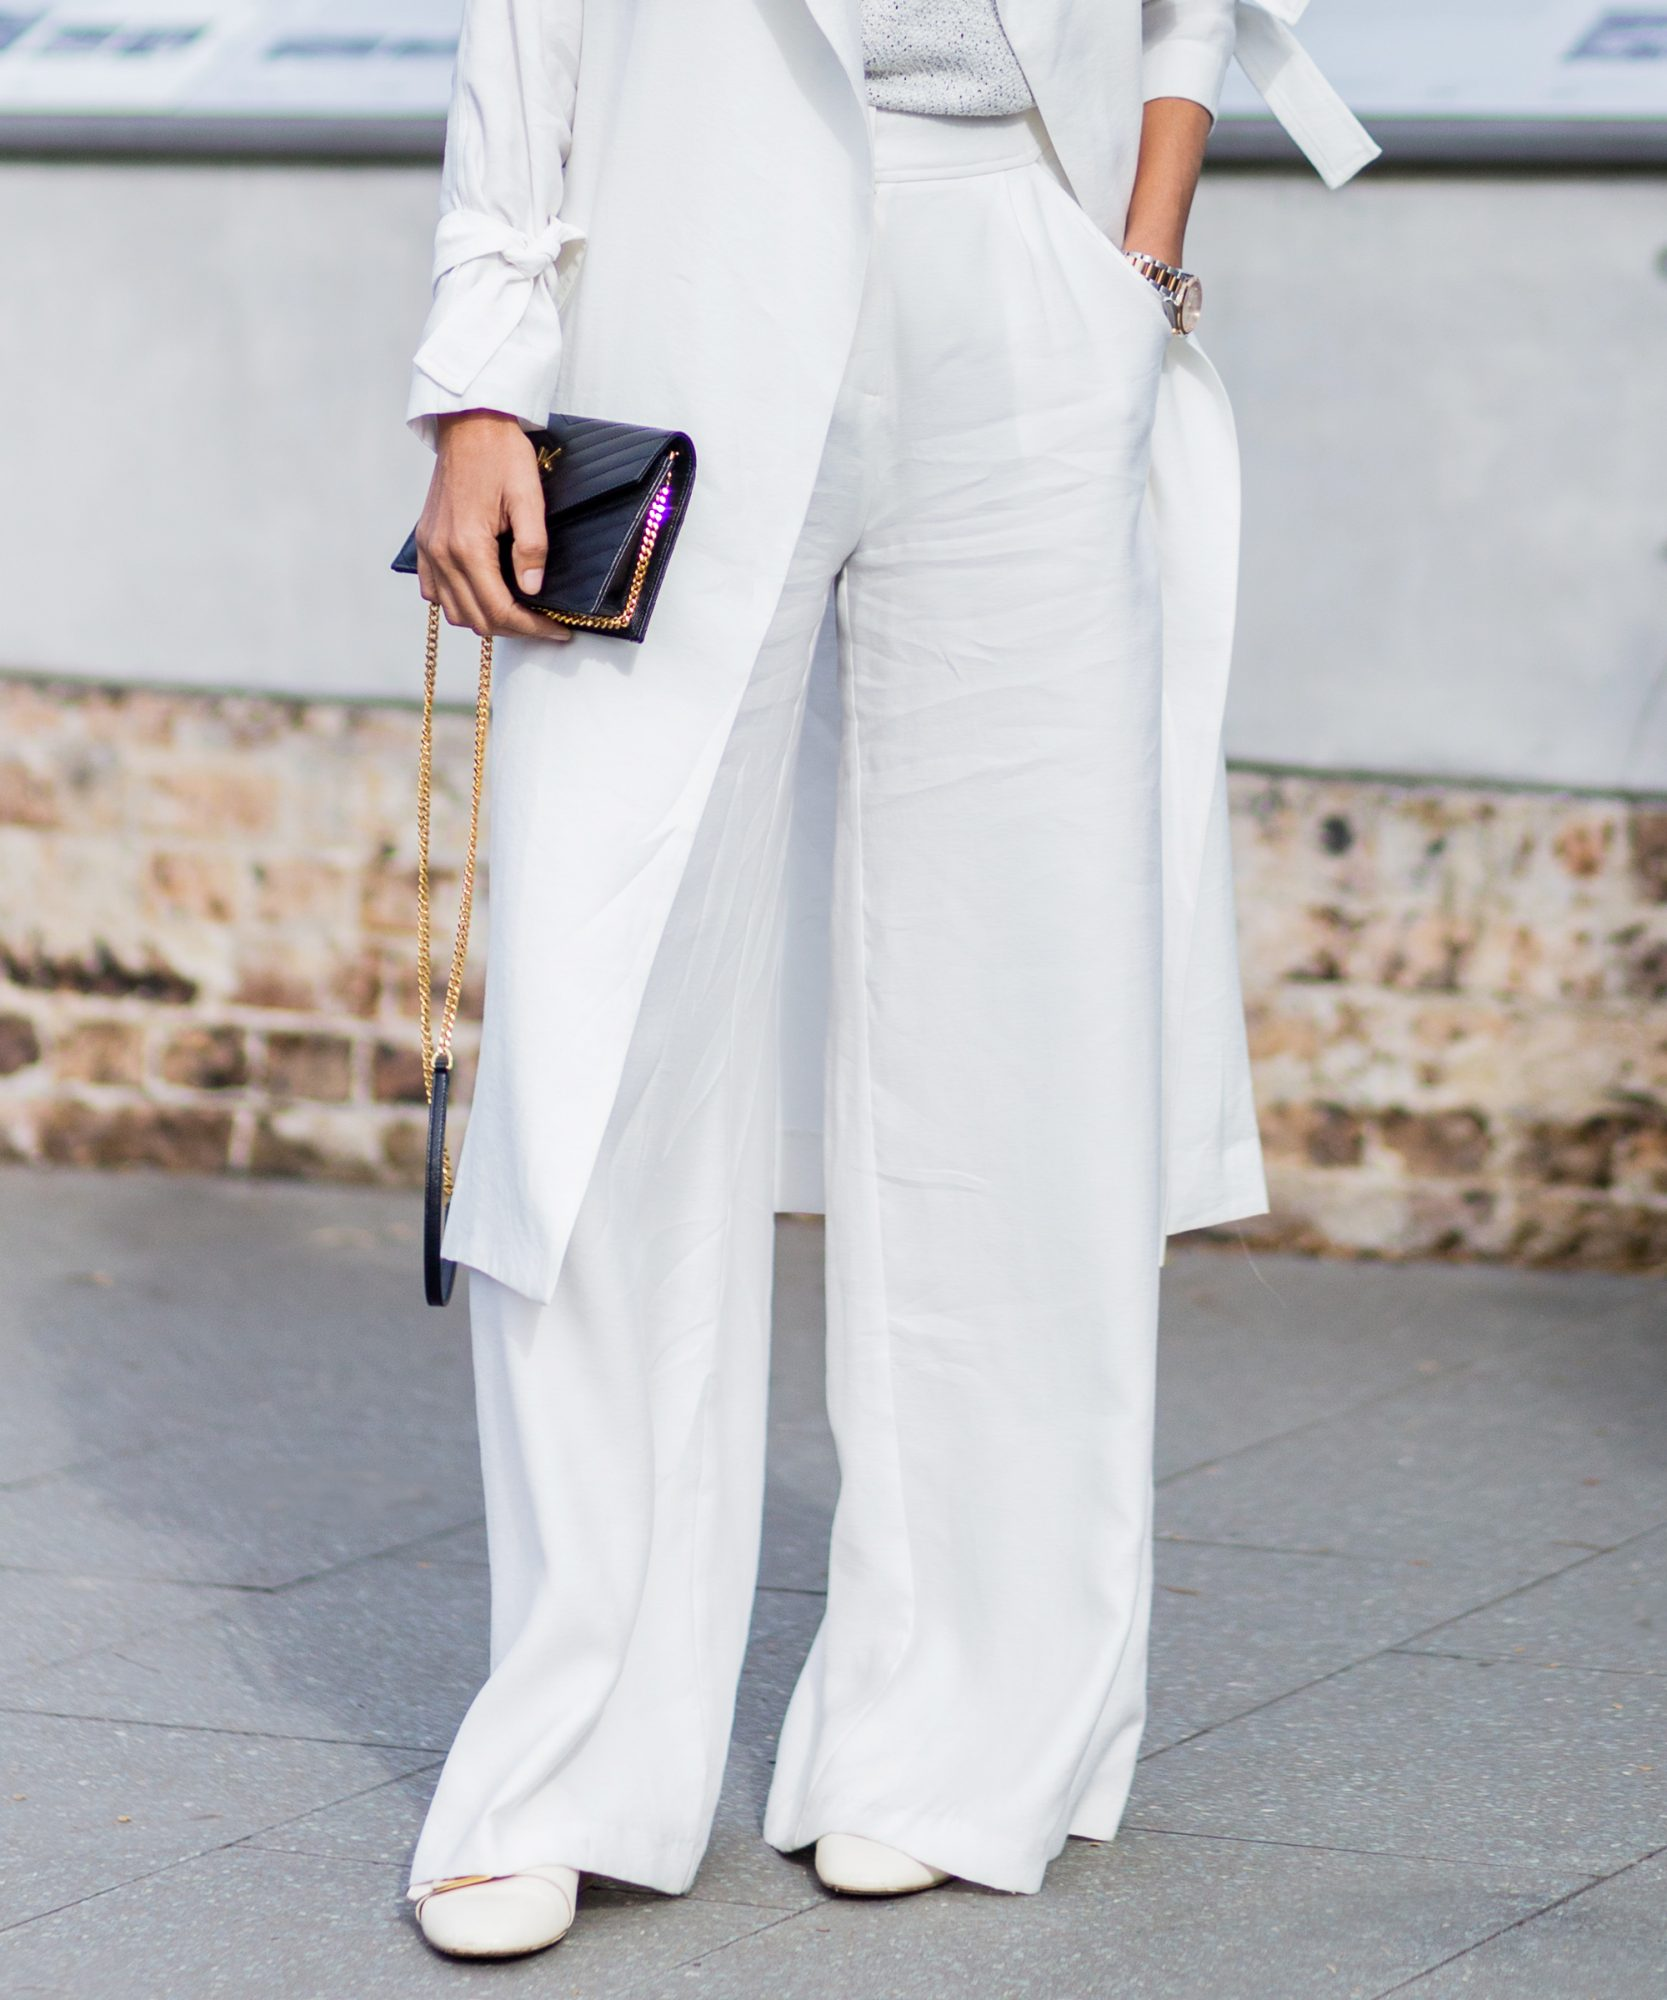 Wide Leg Pants With Flats